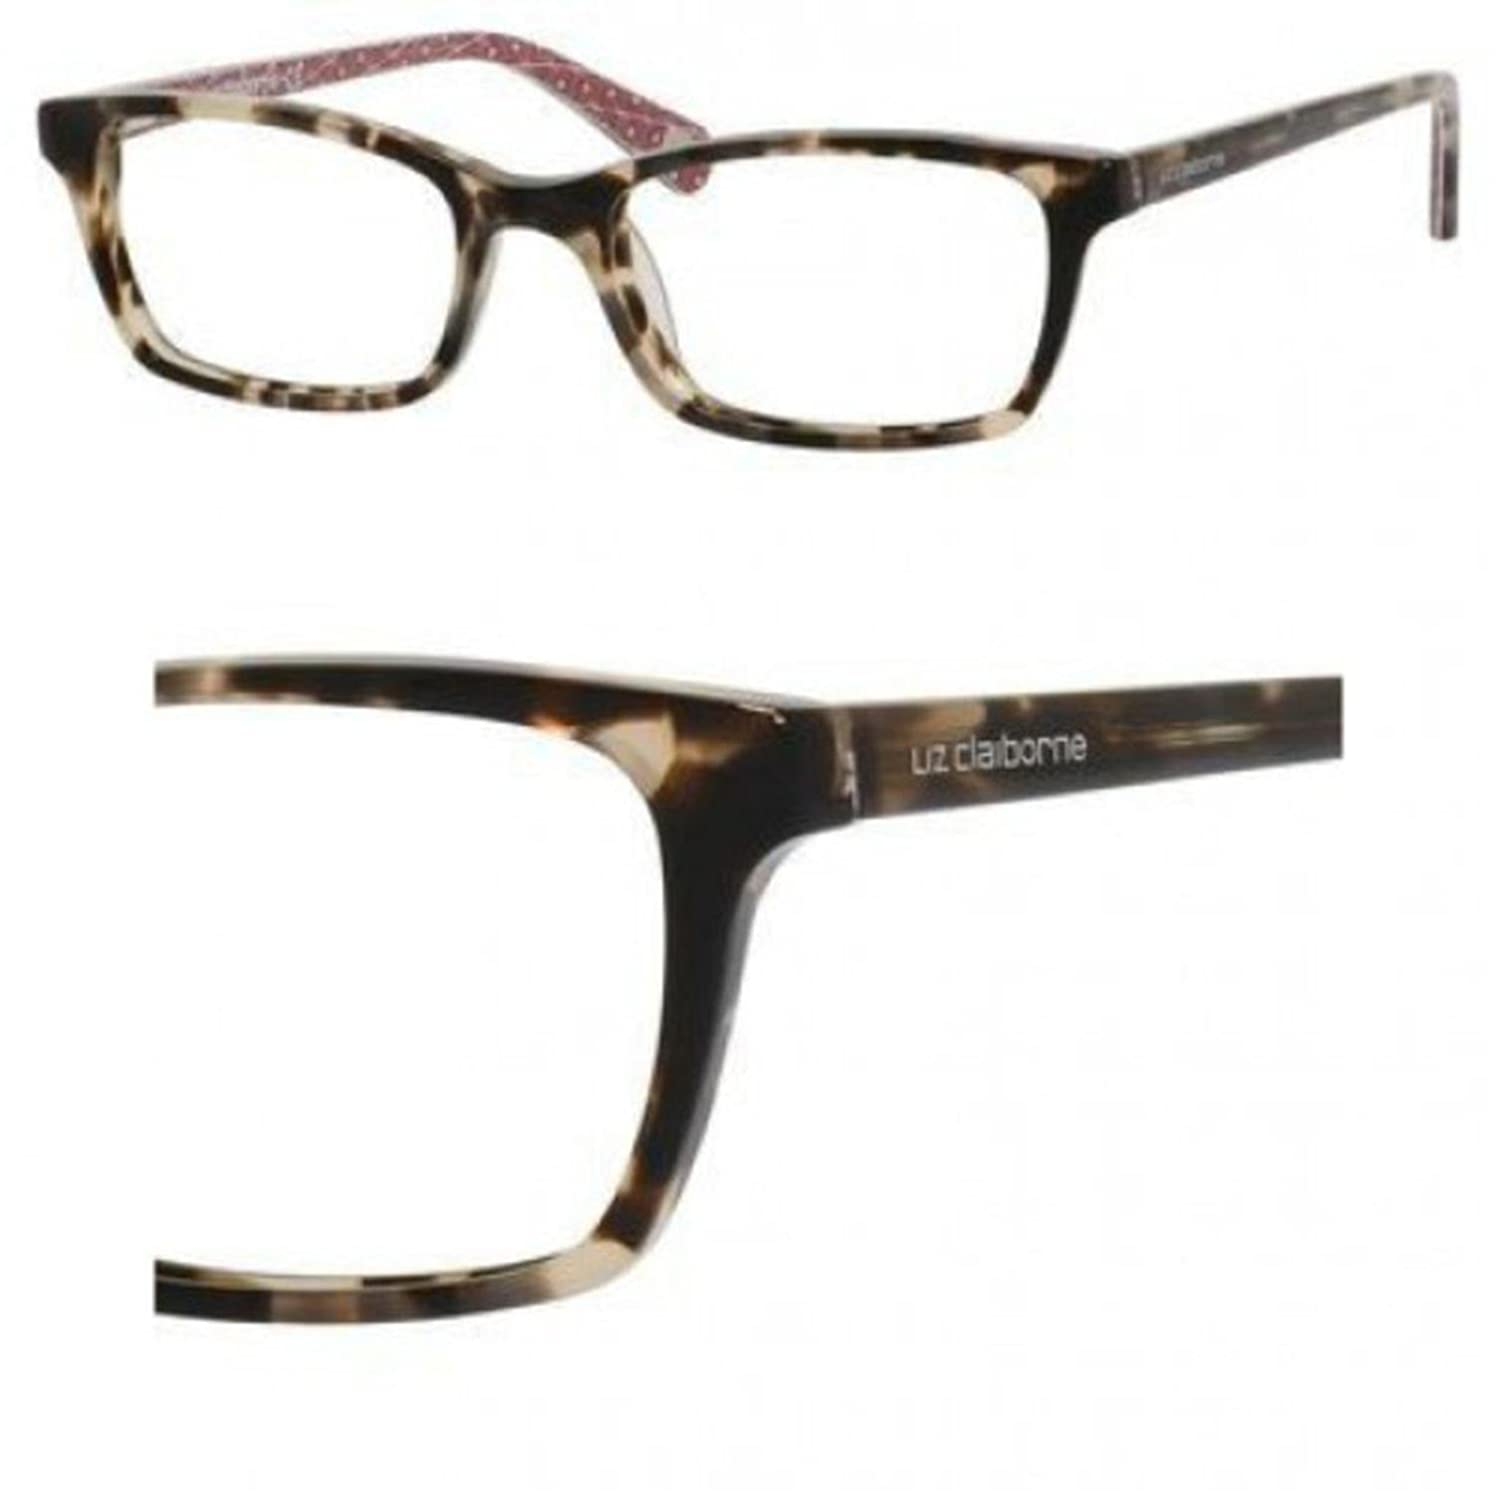 Amazon.com: LIZ CLAIBORNE 0FY2 Rose Tortoise Eyeglasses: Clothing